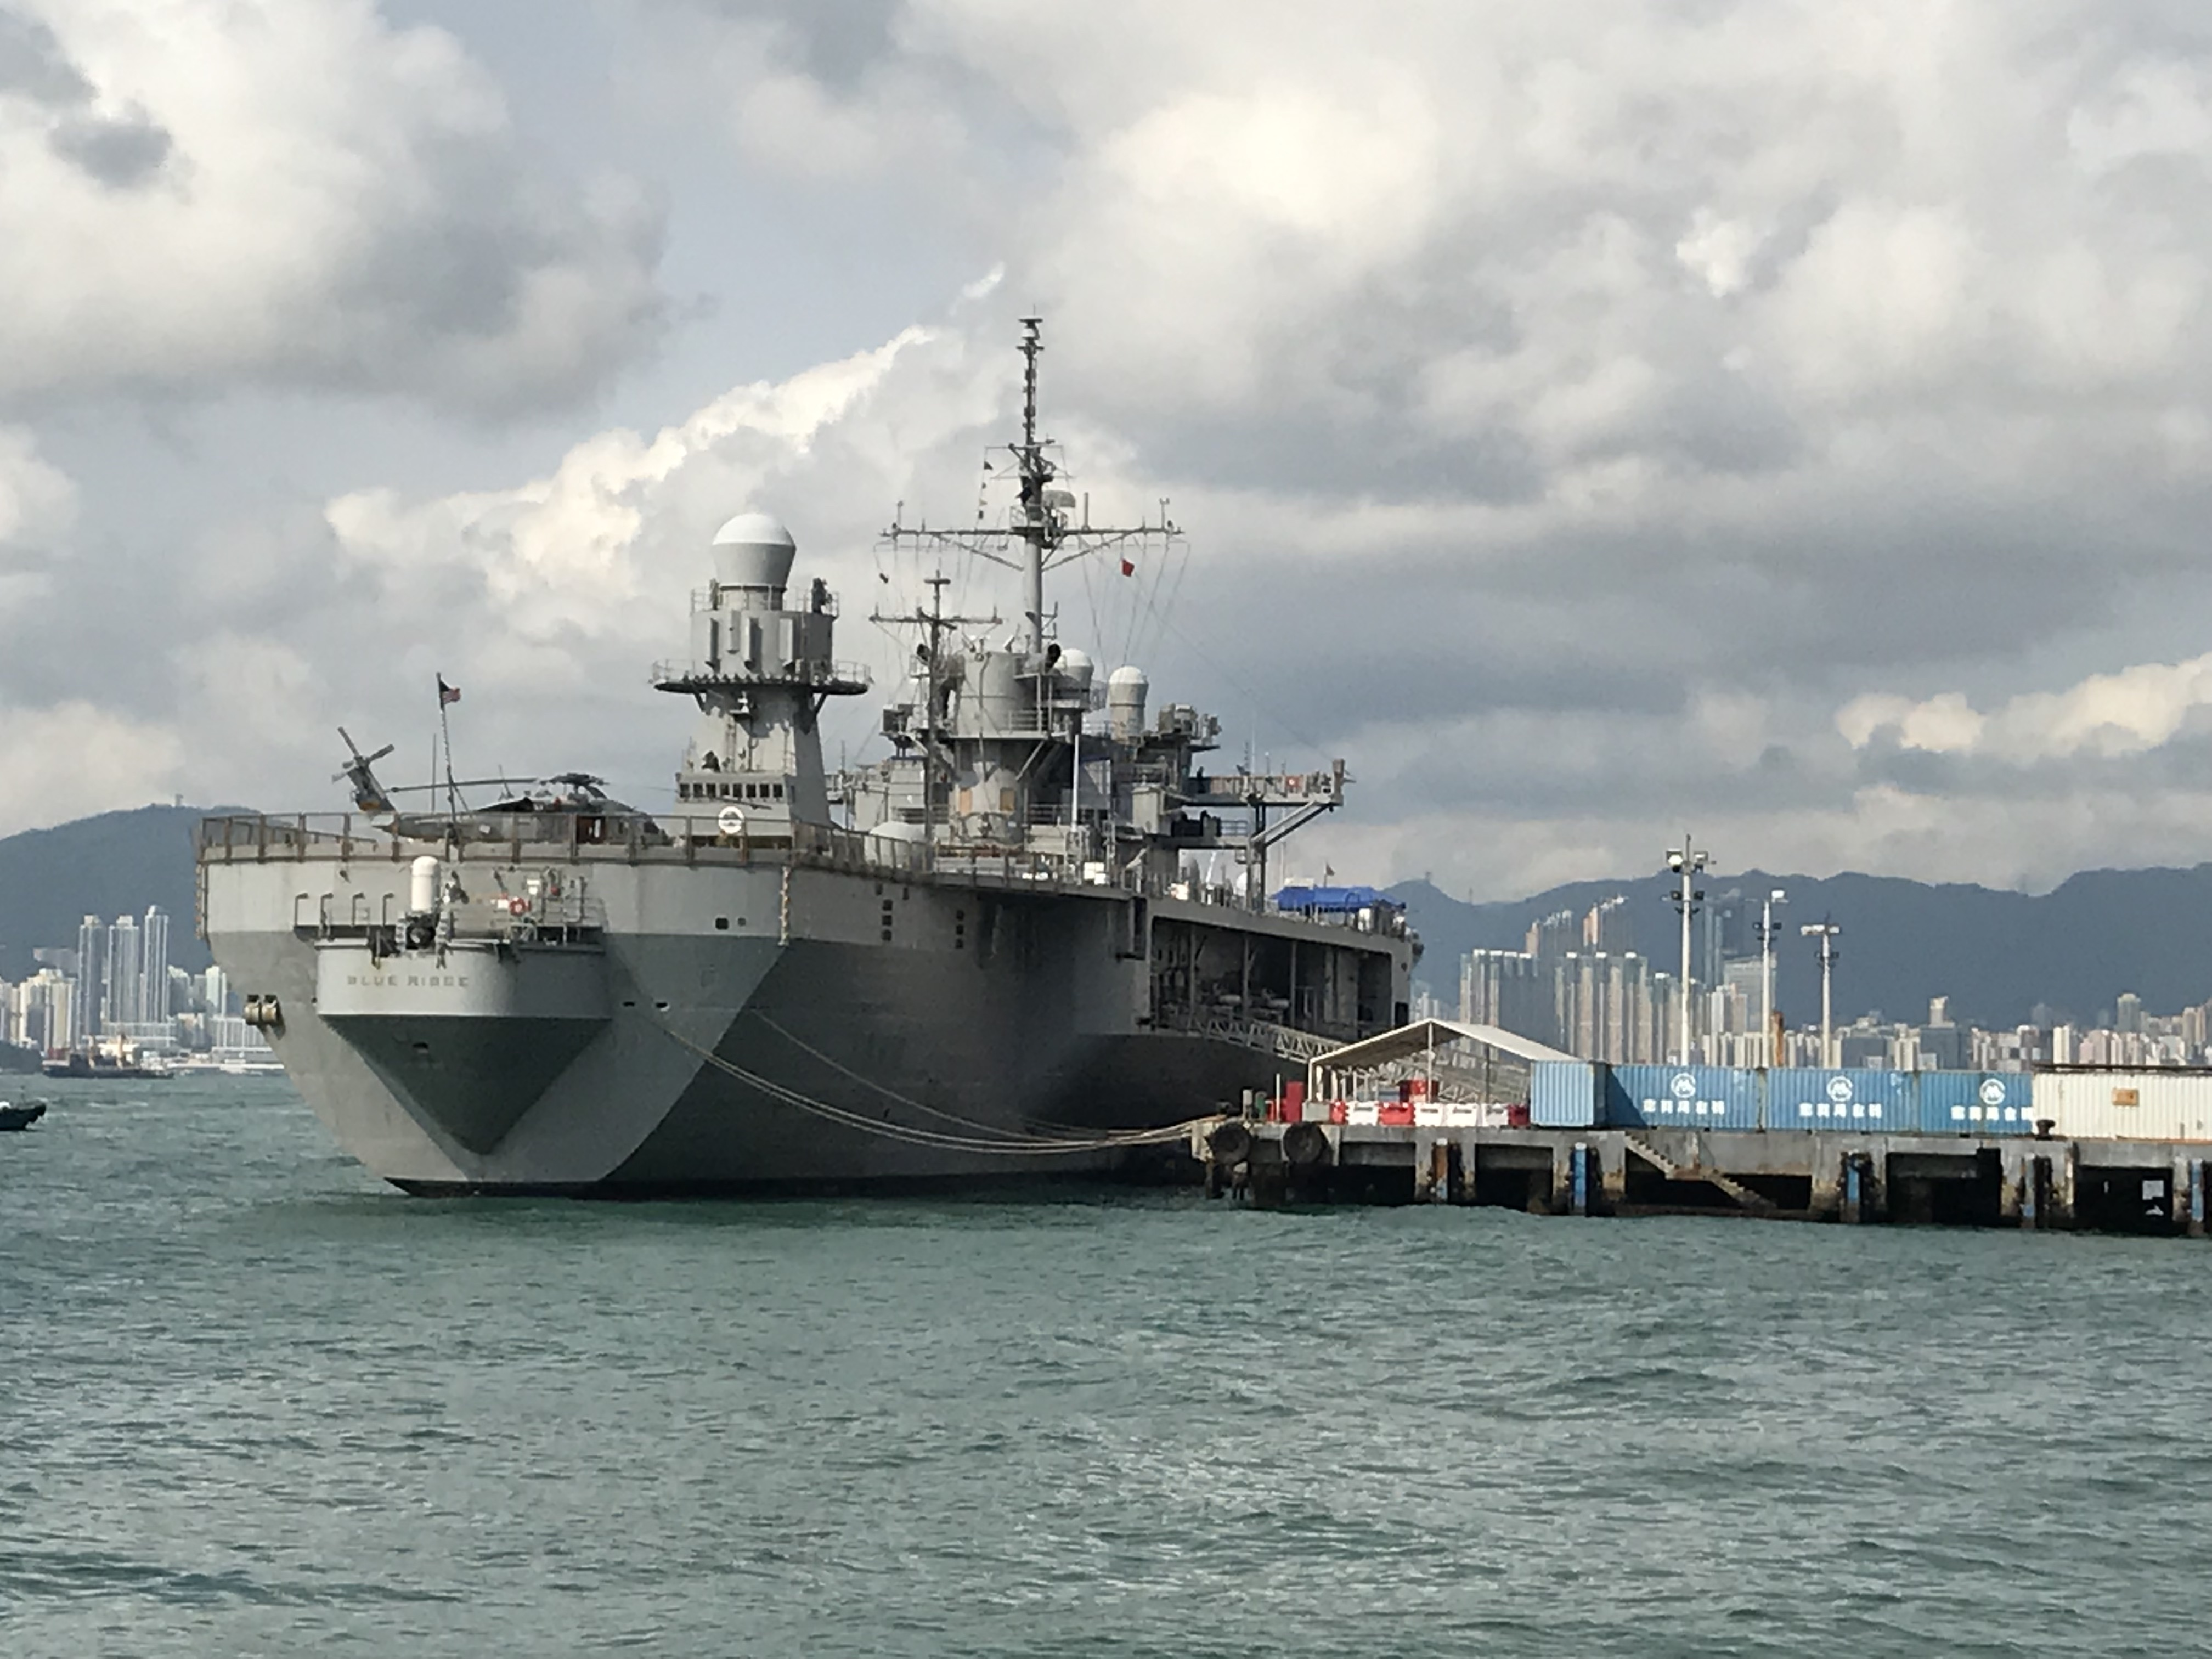 US Navy orders self-quarantine for ships that have made stops in the Pacific amid coronavirus concerns